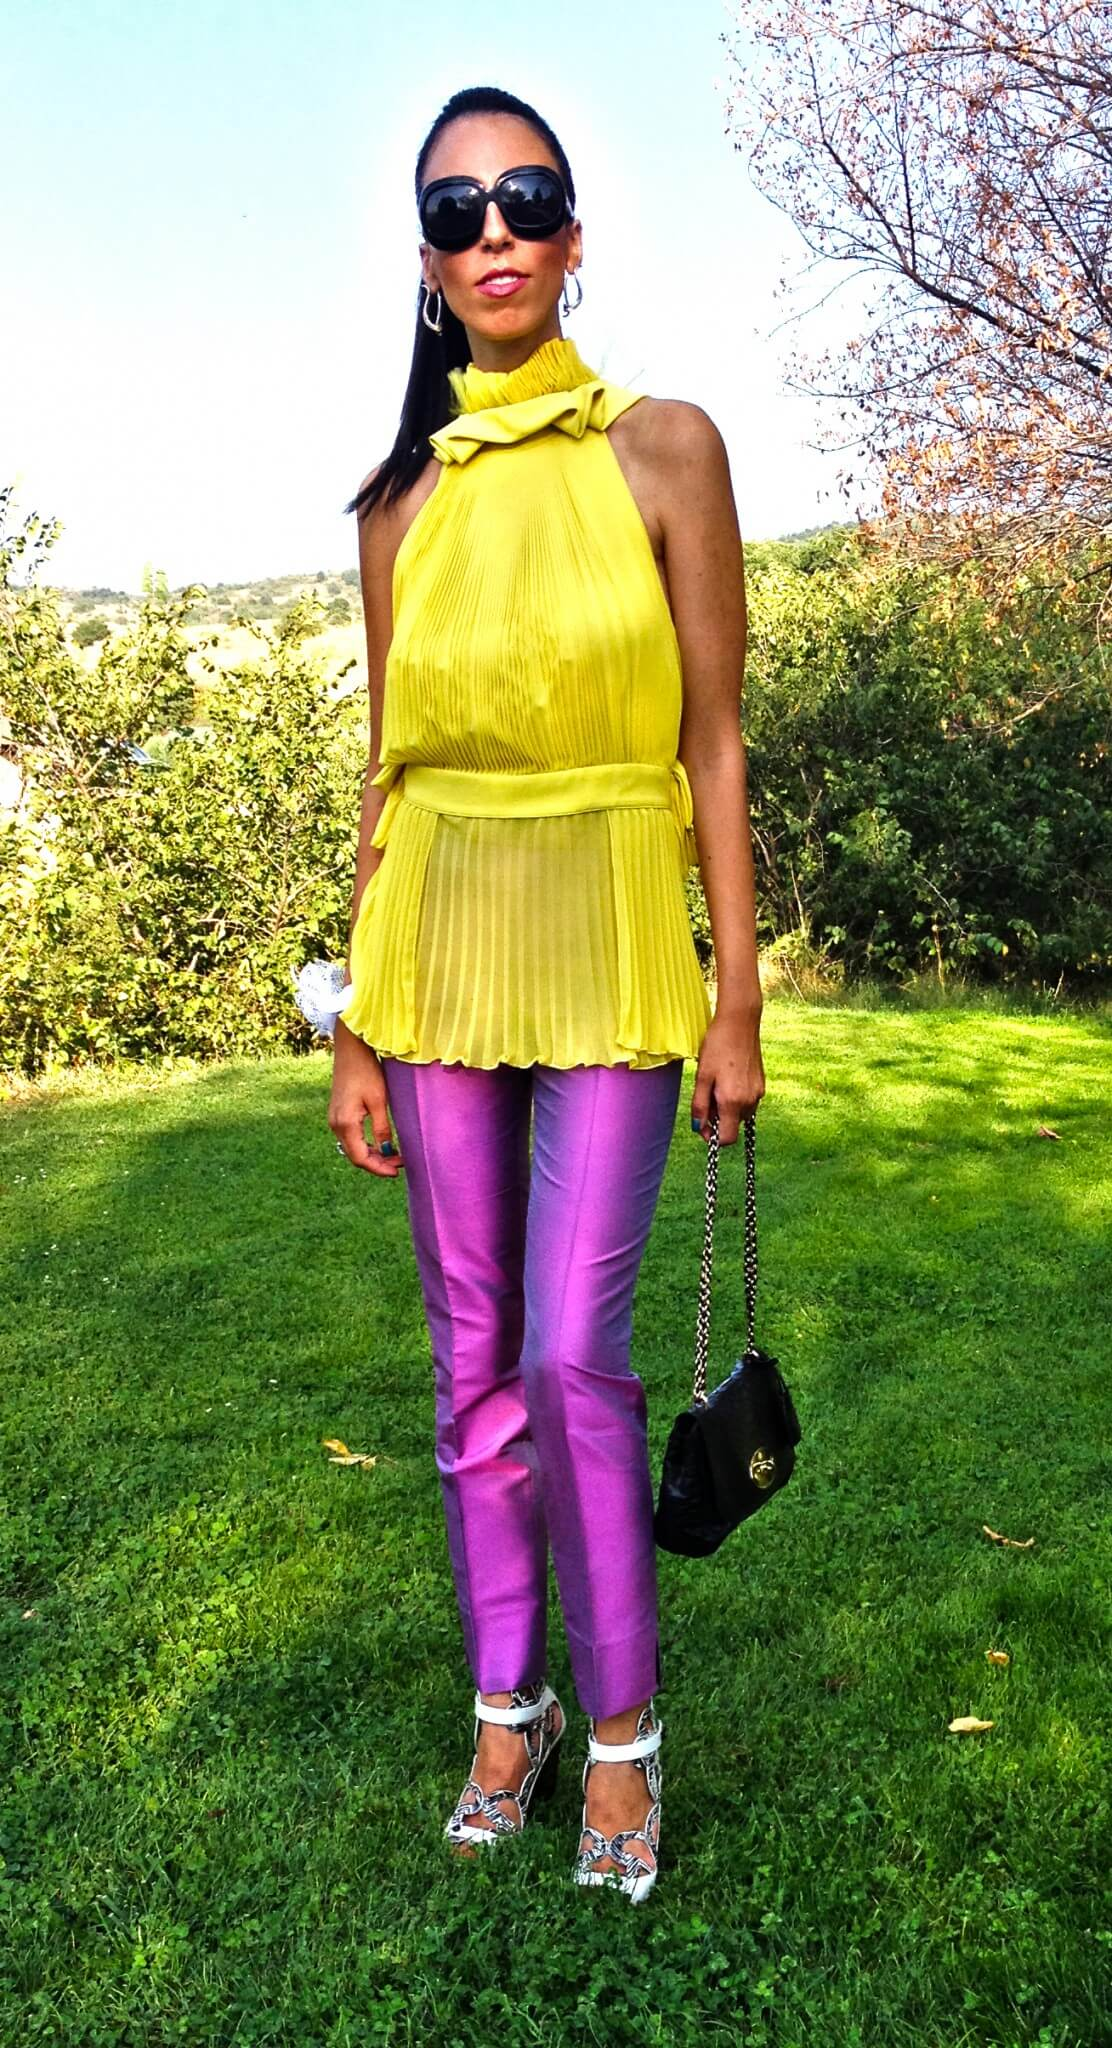 Colorblocking party look - Form Follows Fashion - photo#47